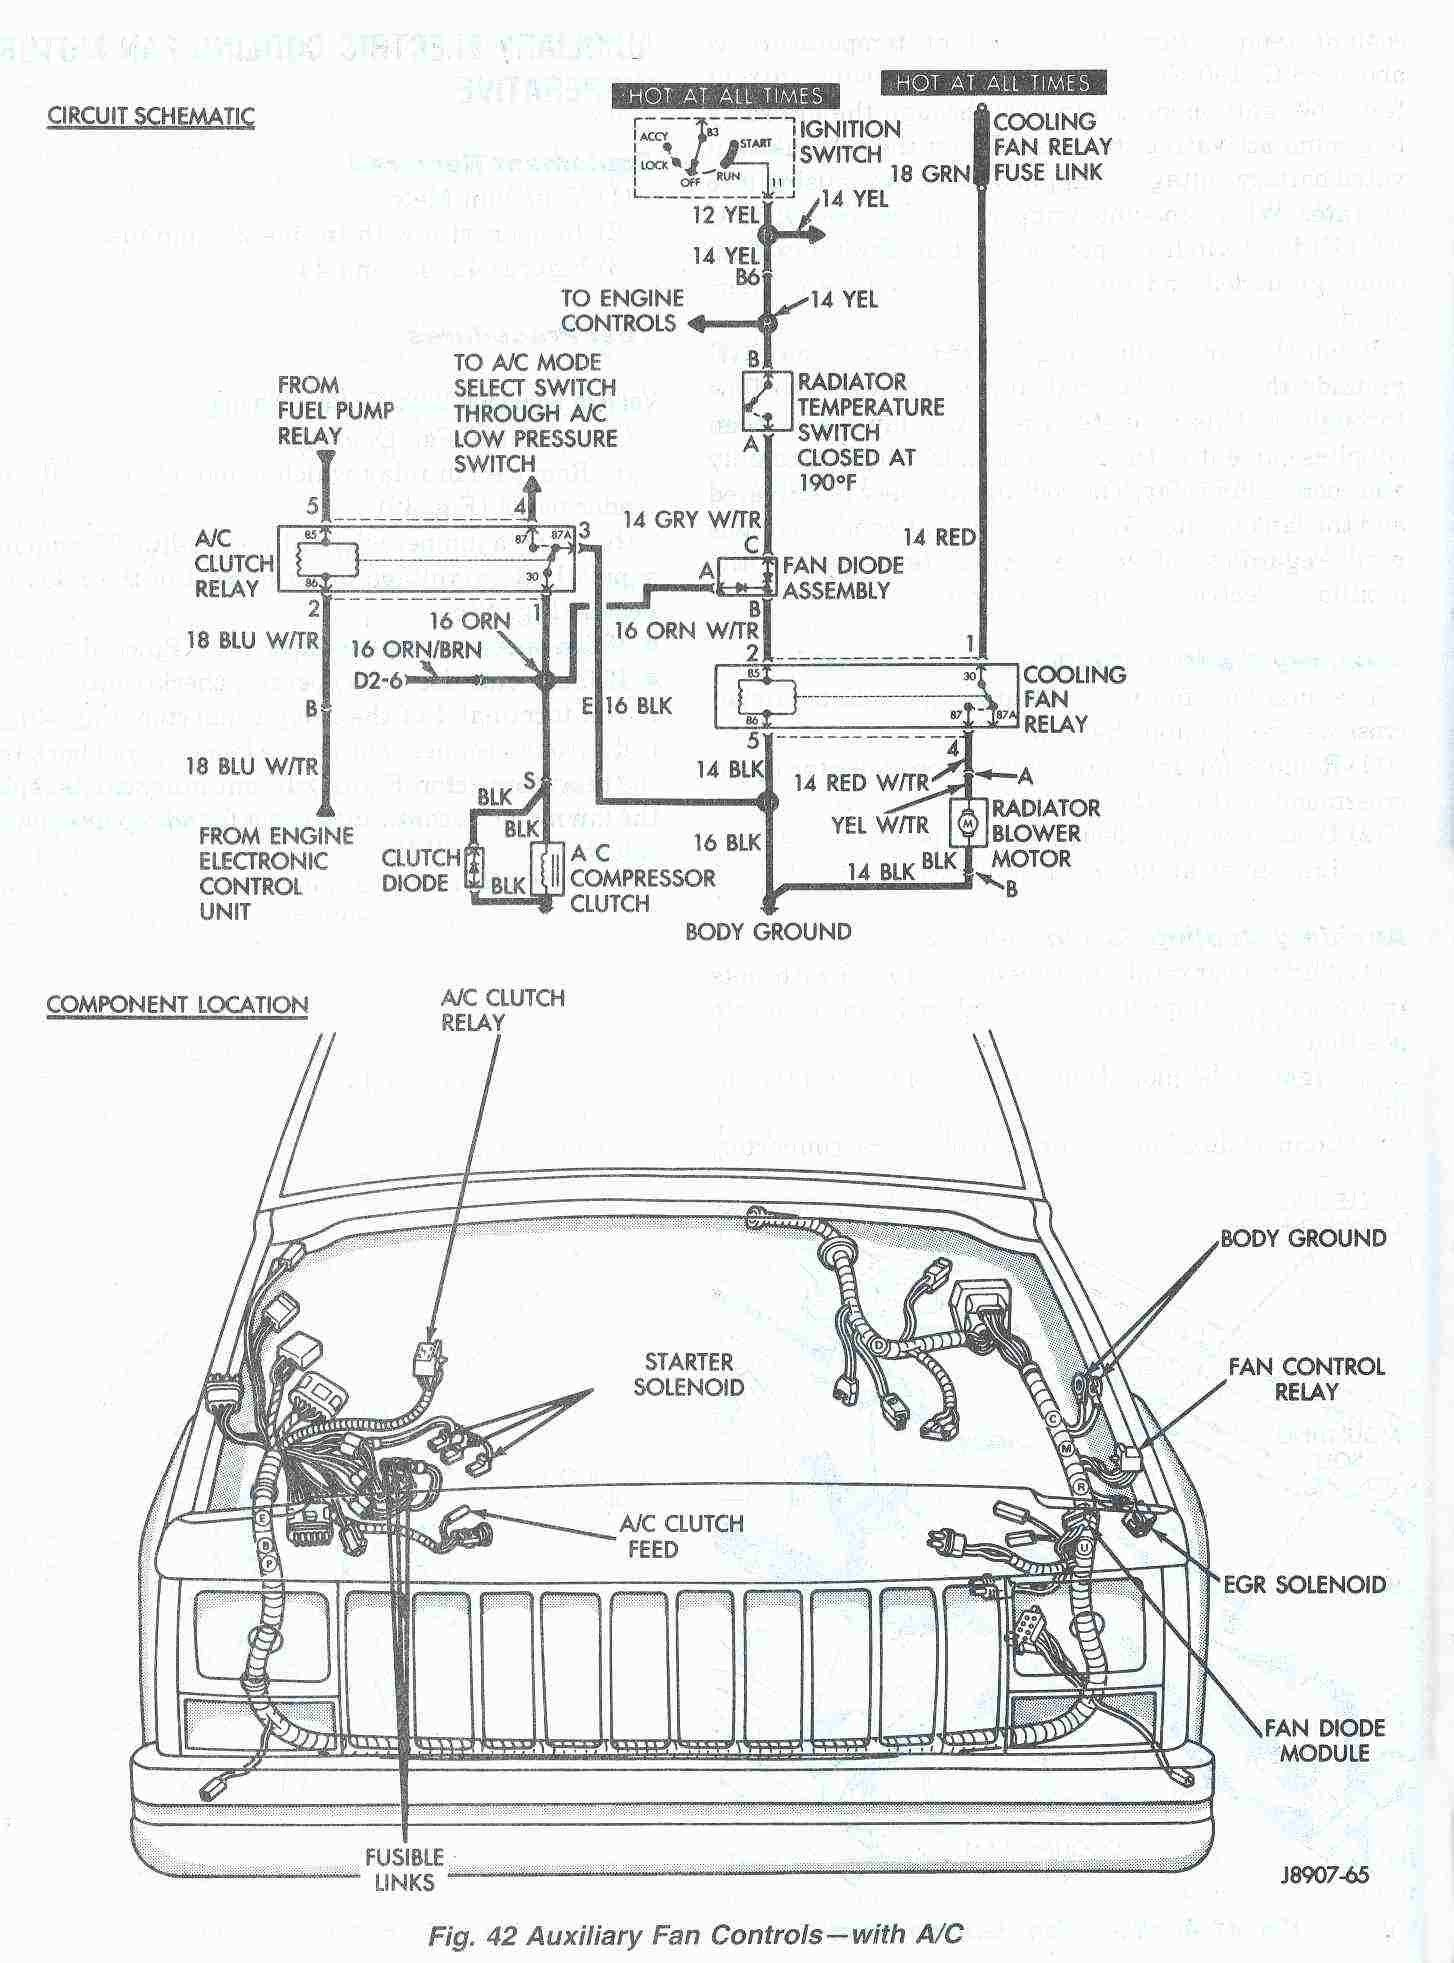 97 Jeep Grand Cherokee Wiring Diagram from i.pinimg.com